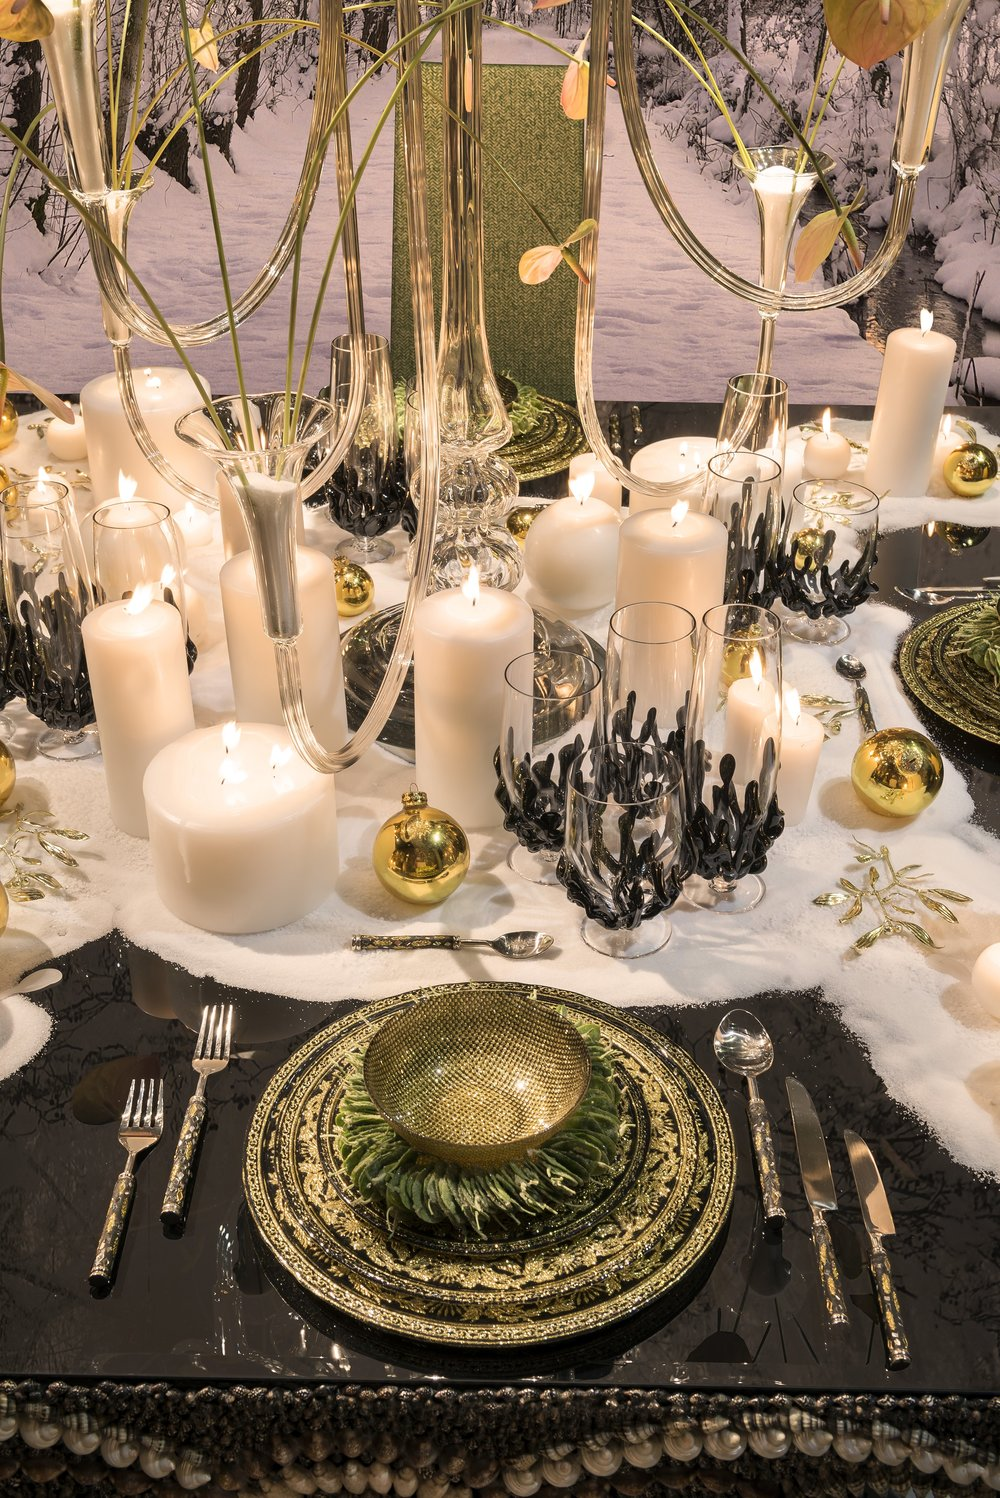 Interiors Advent Calendar - Christmas table decorations by VG New Trend @ Masha Shapiro Agency.jpg